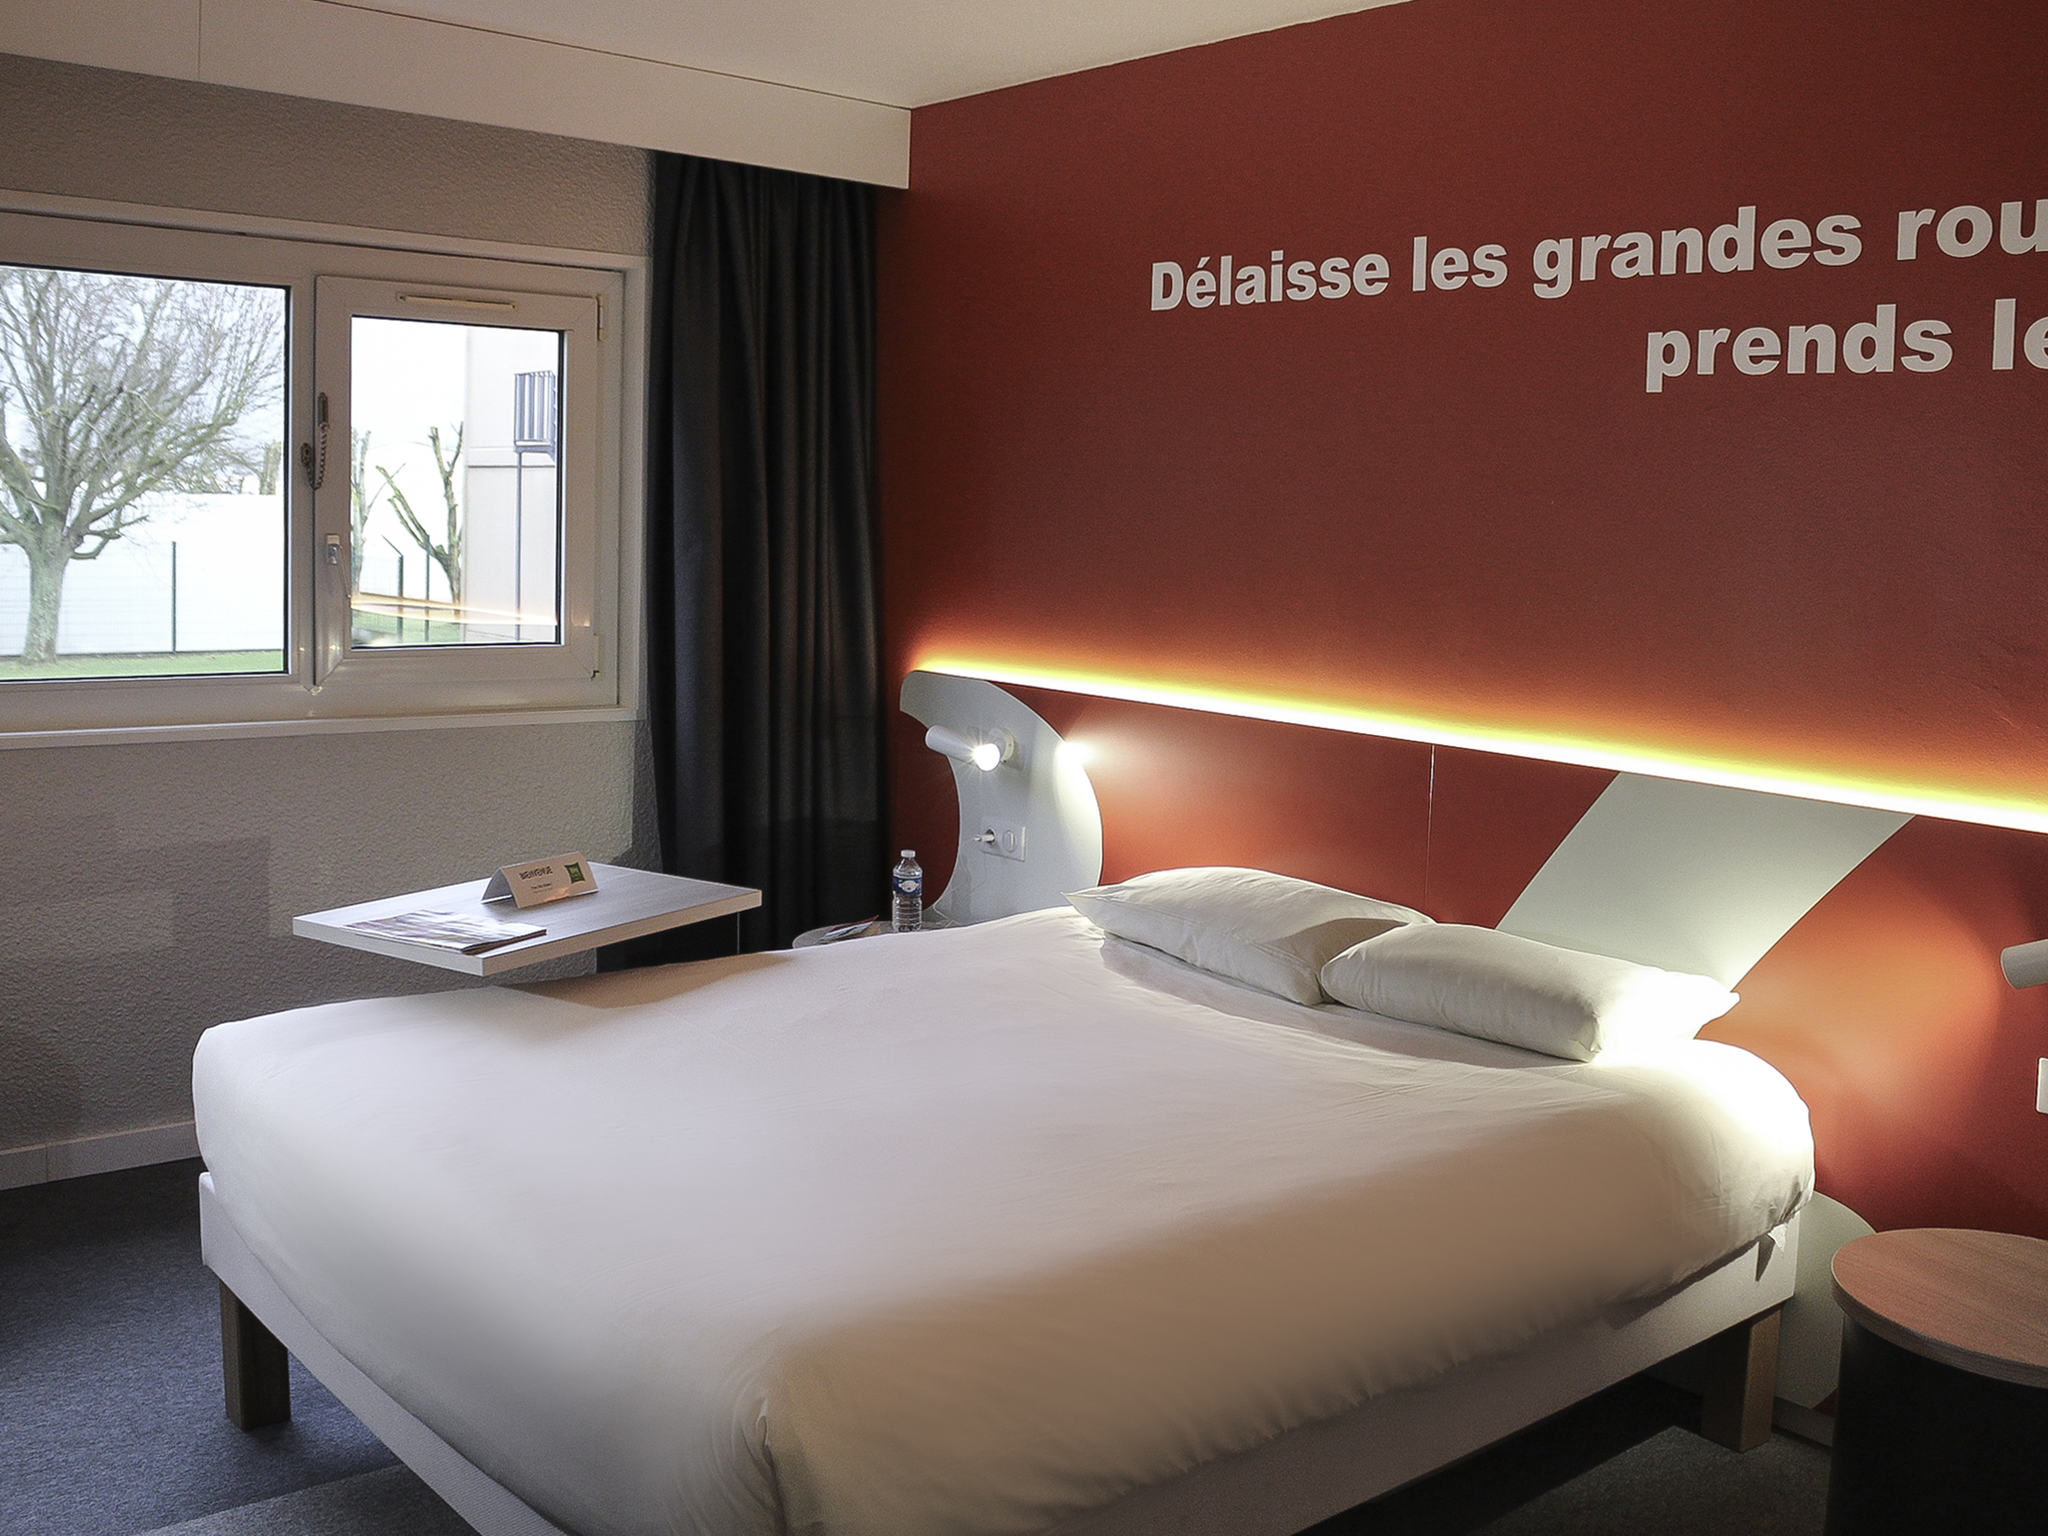 chambre Ibis Styles, crédit photo : Ibis Styles